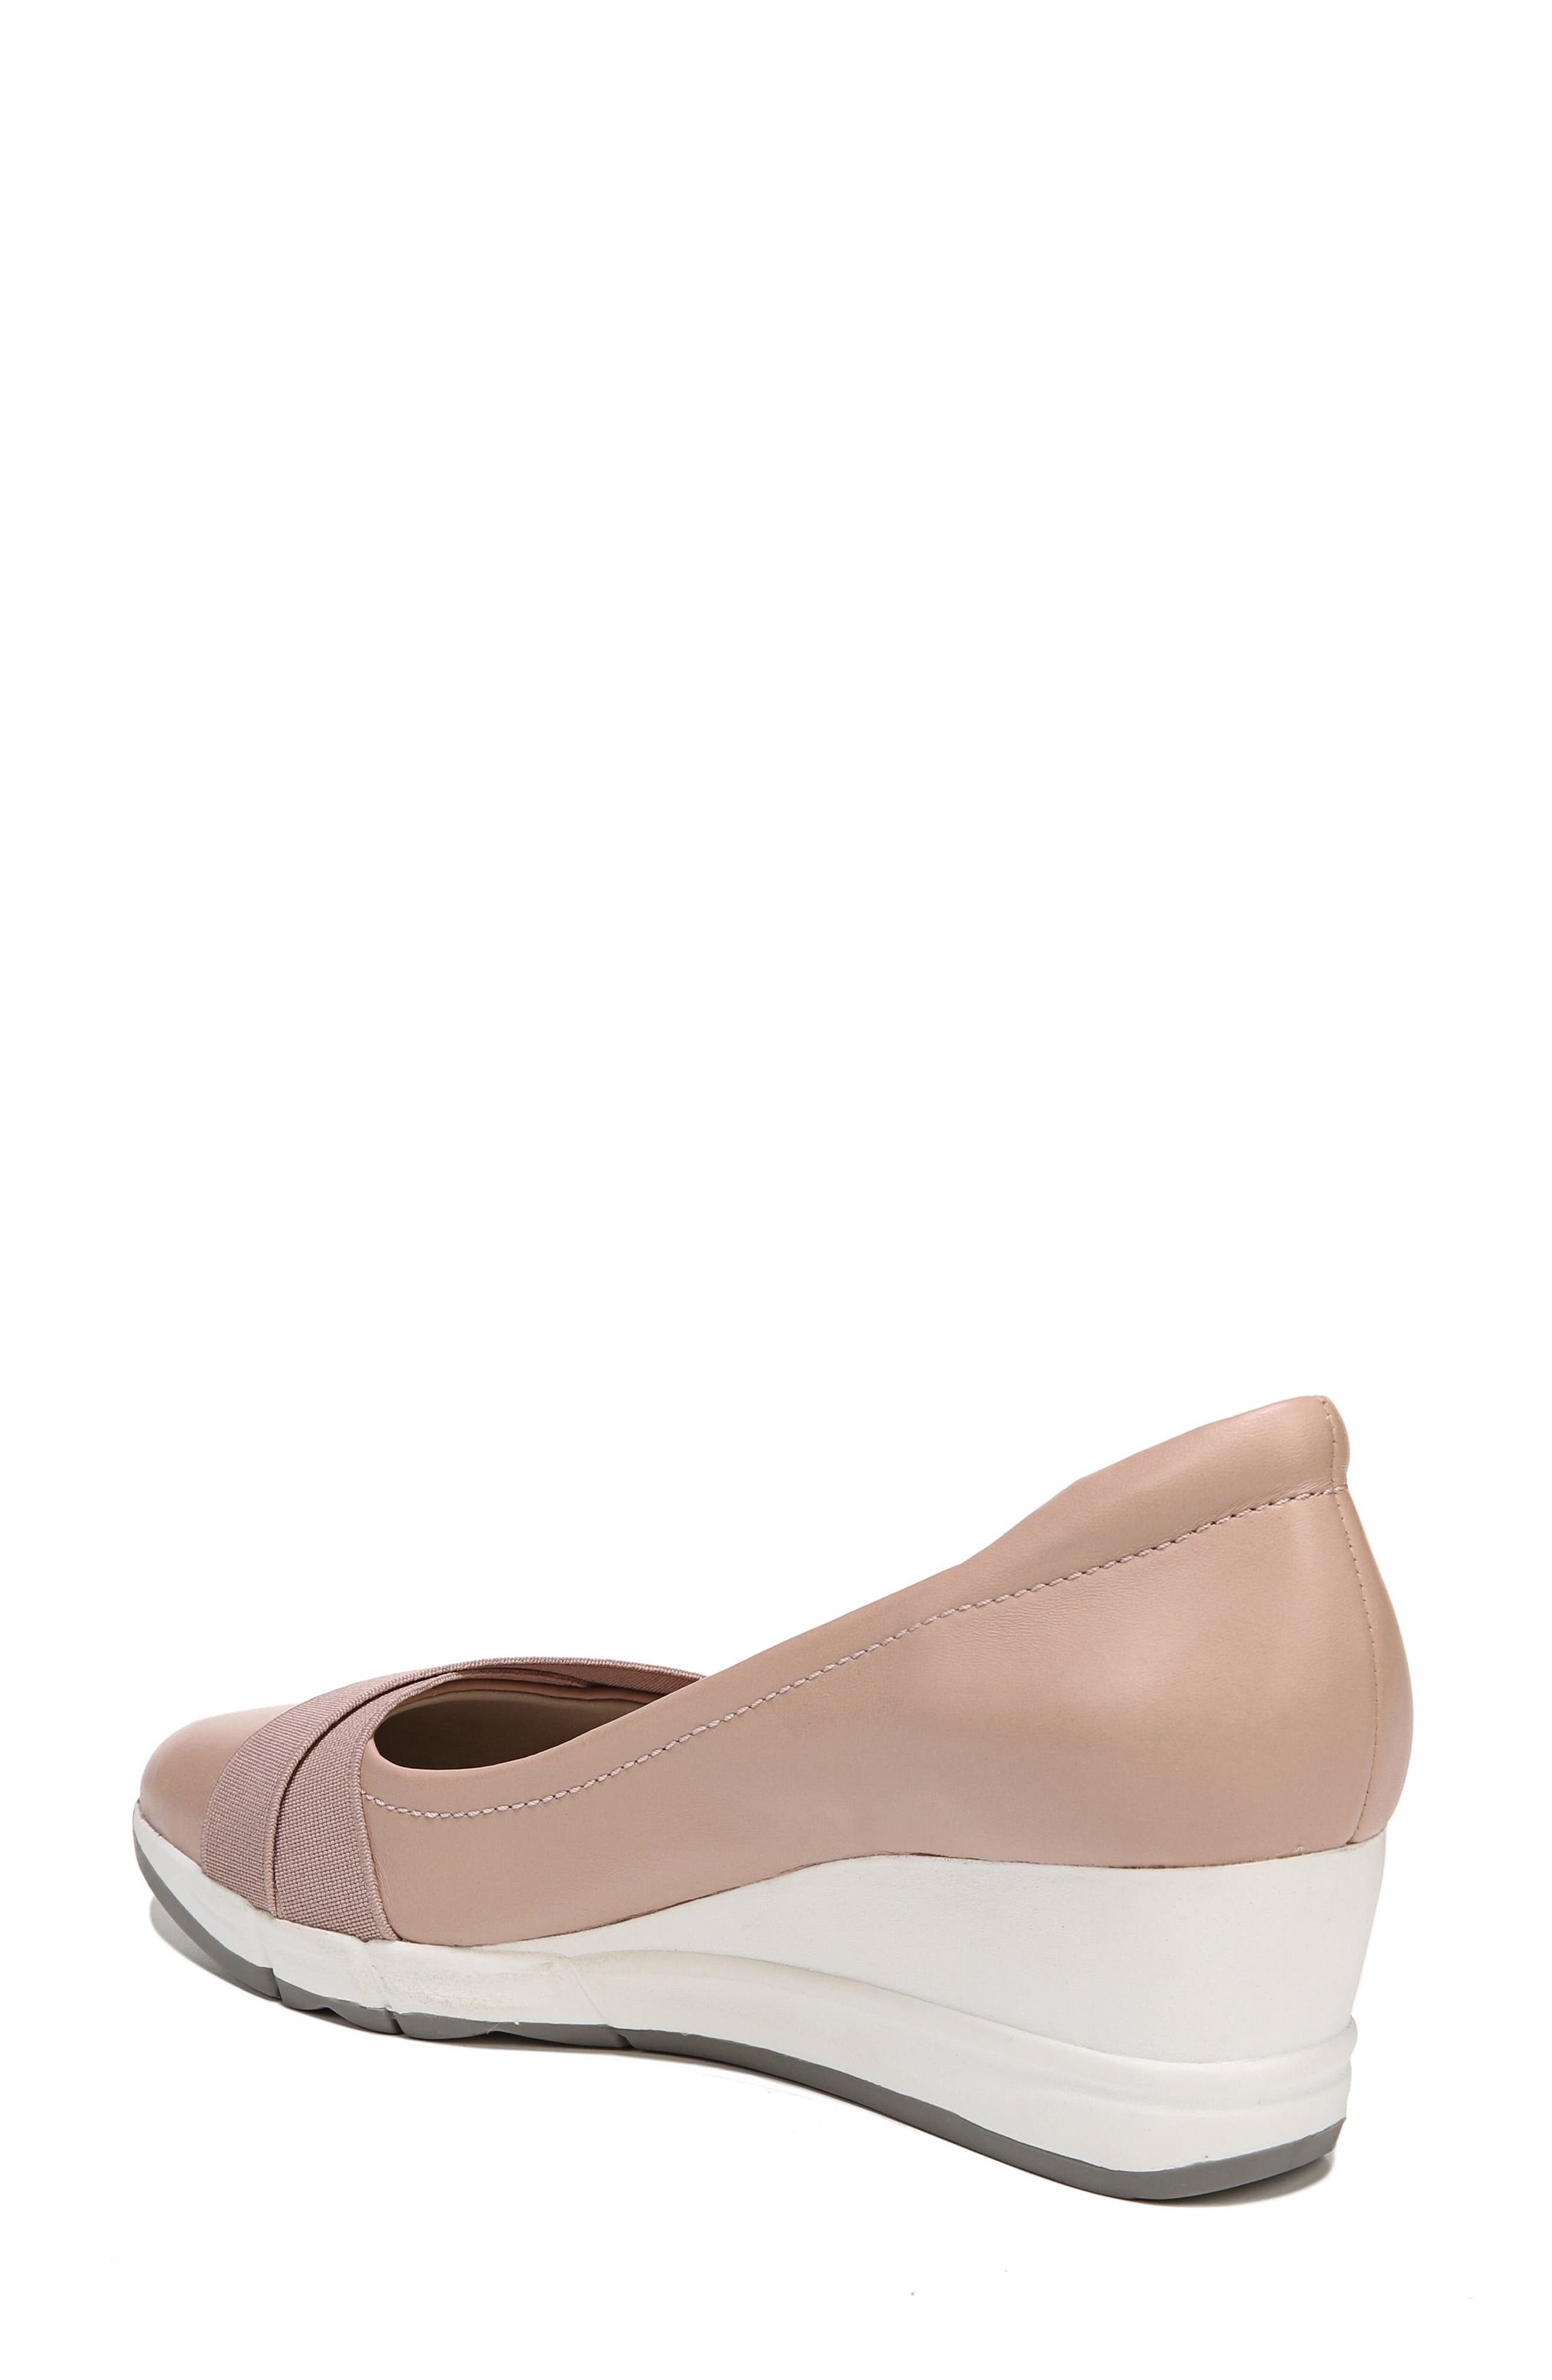 Harlyn Wedge Pump,                             Alternate thumbnail 2, color,                             Mauve Leather